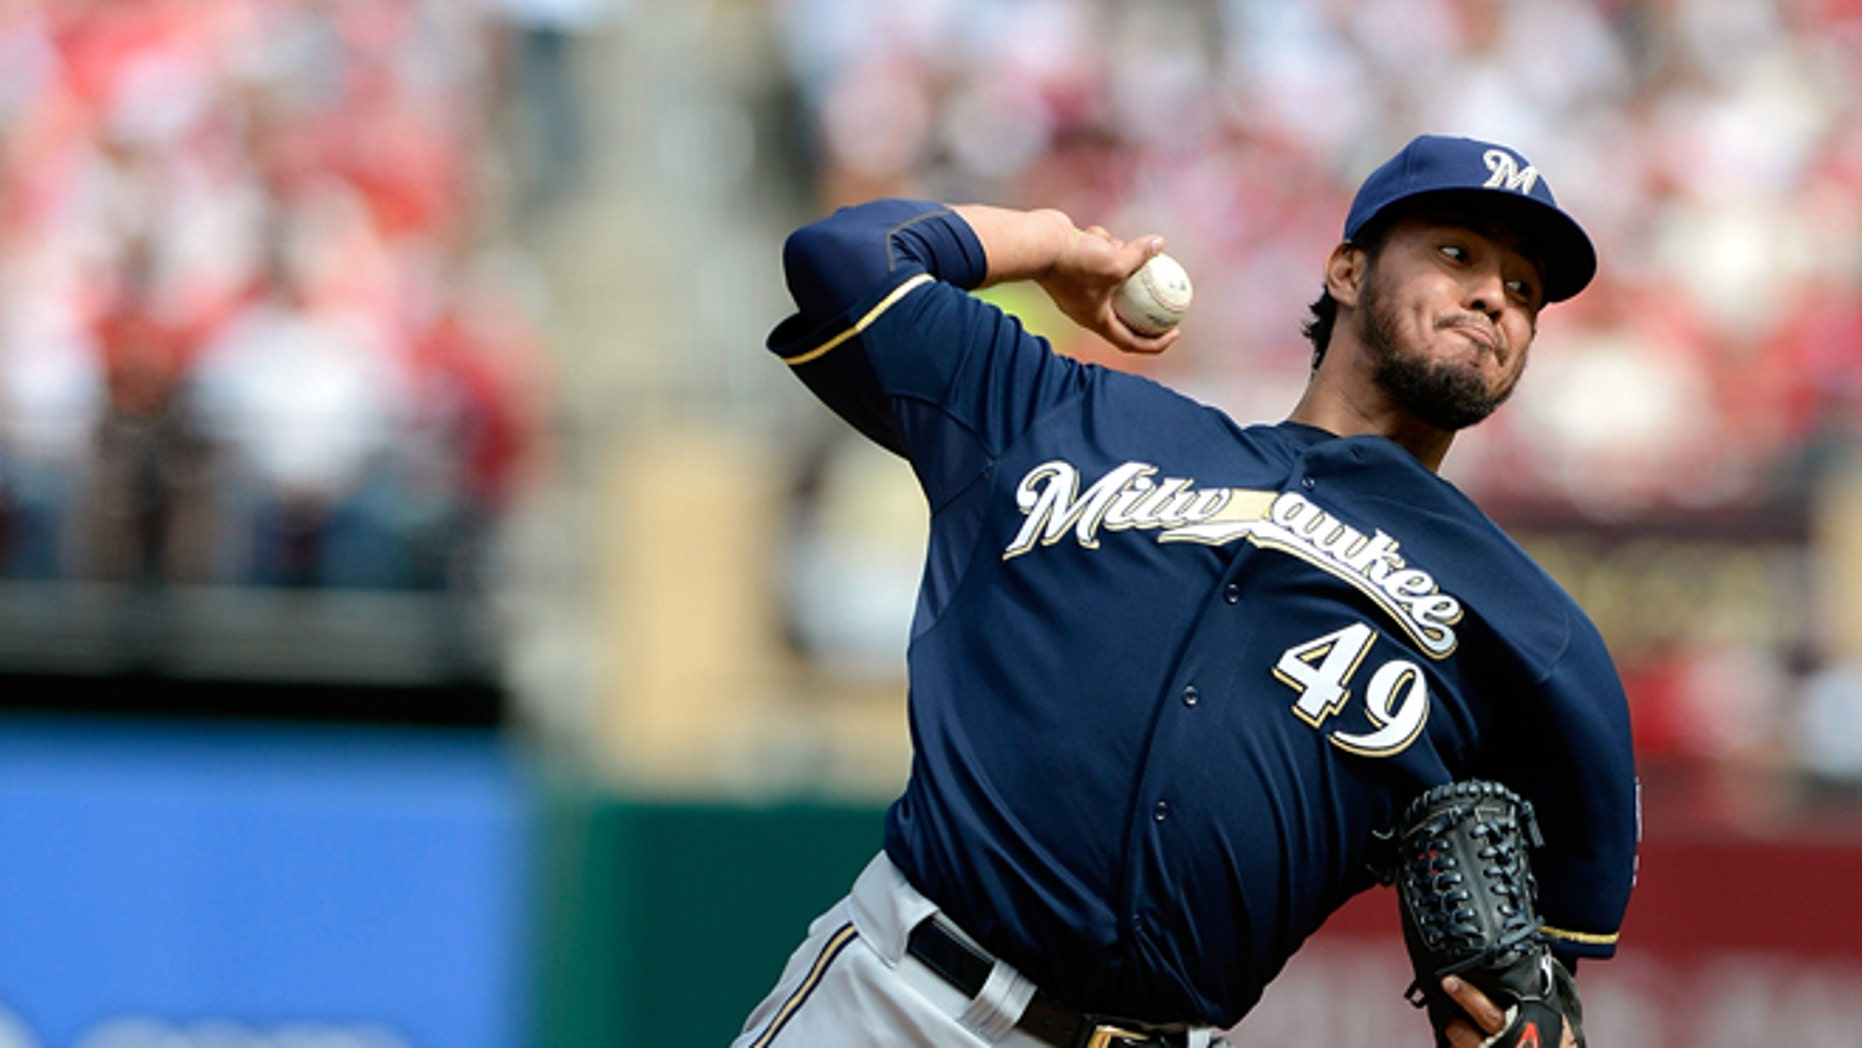 ST. LOUIS, MO - APRIL 13: Yovani Gallardo #49 of the Milwaukee Brewers throws to a St. Louis Cardinals batter during the first inning at Busch Stadium on April 13, 2013 in St. Louis, Missouri.  (Photo by Jeff Curry/Getty Images)